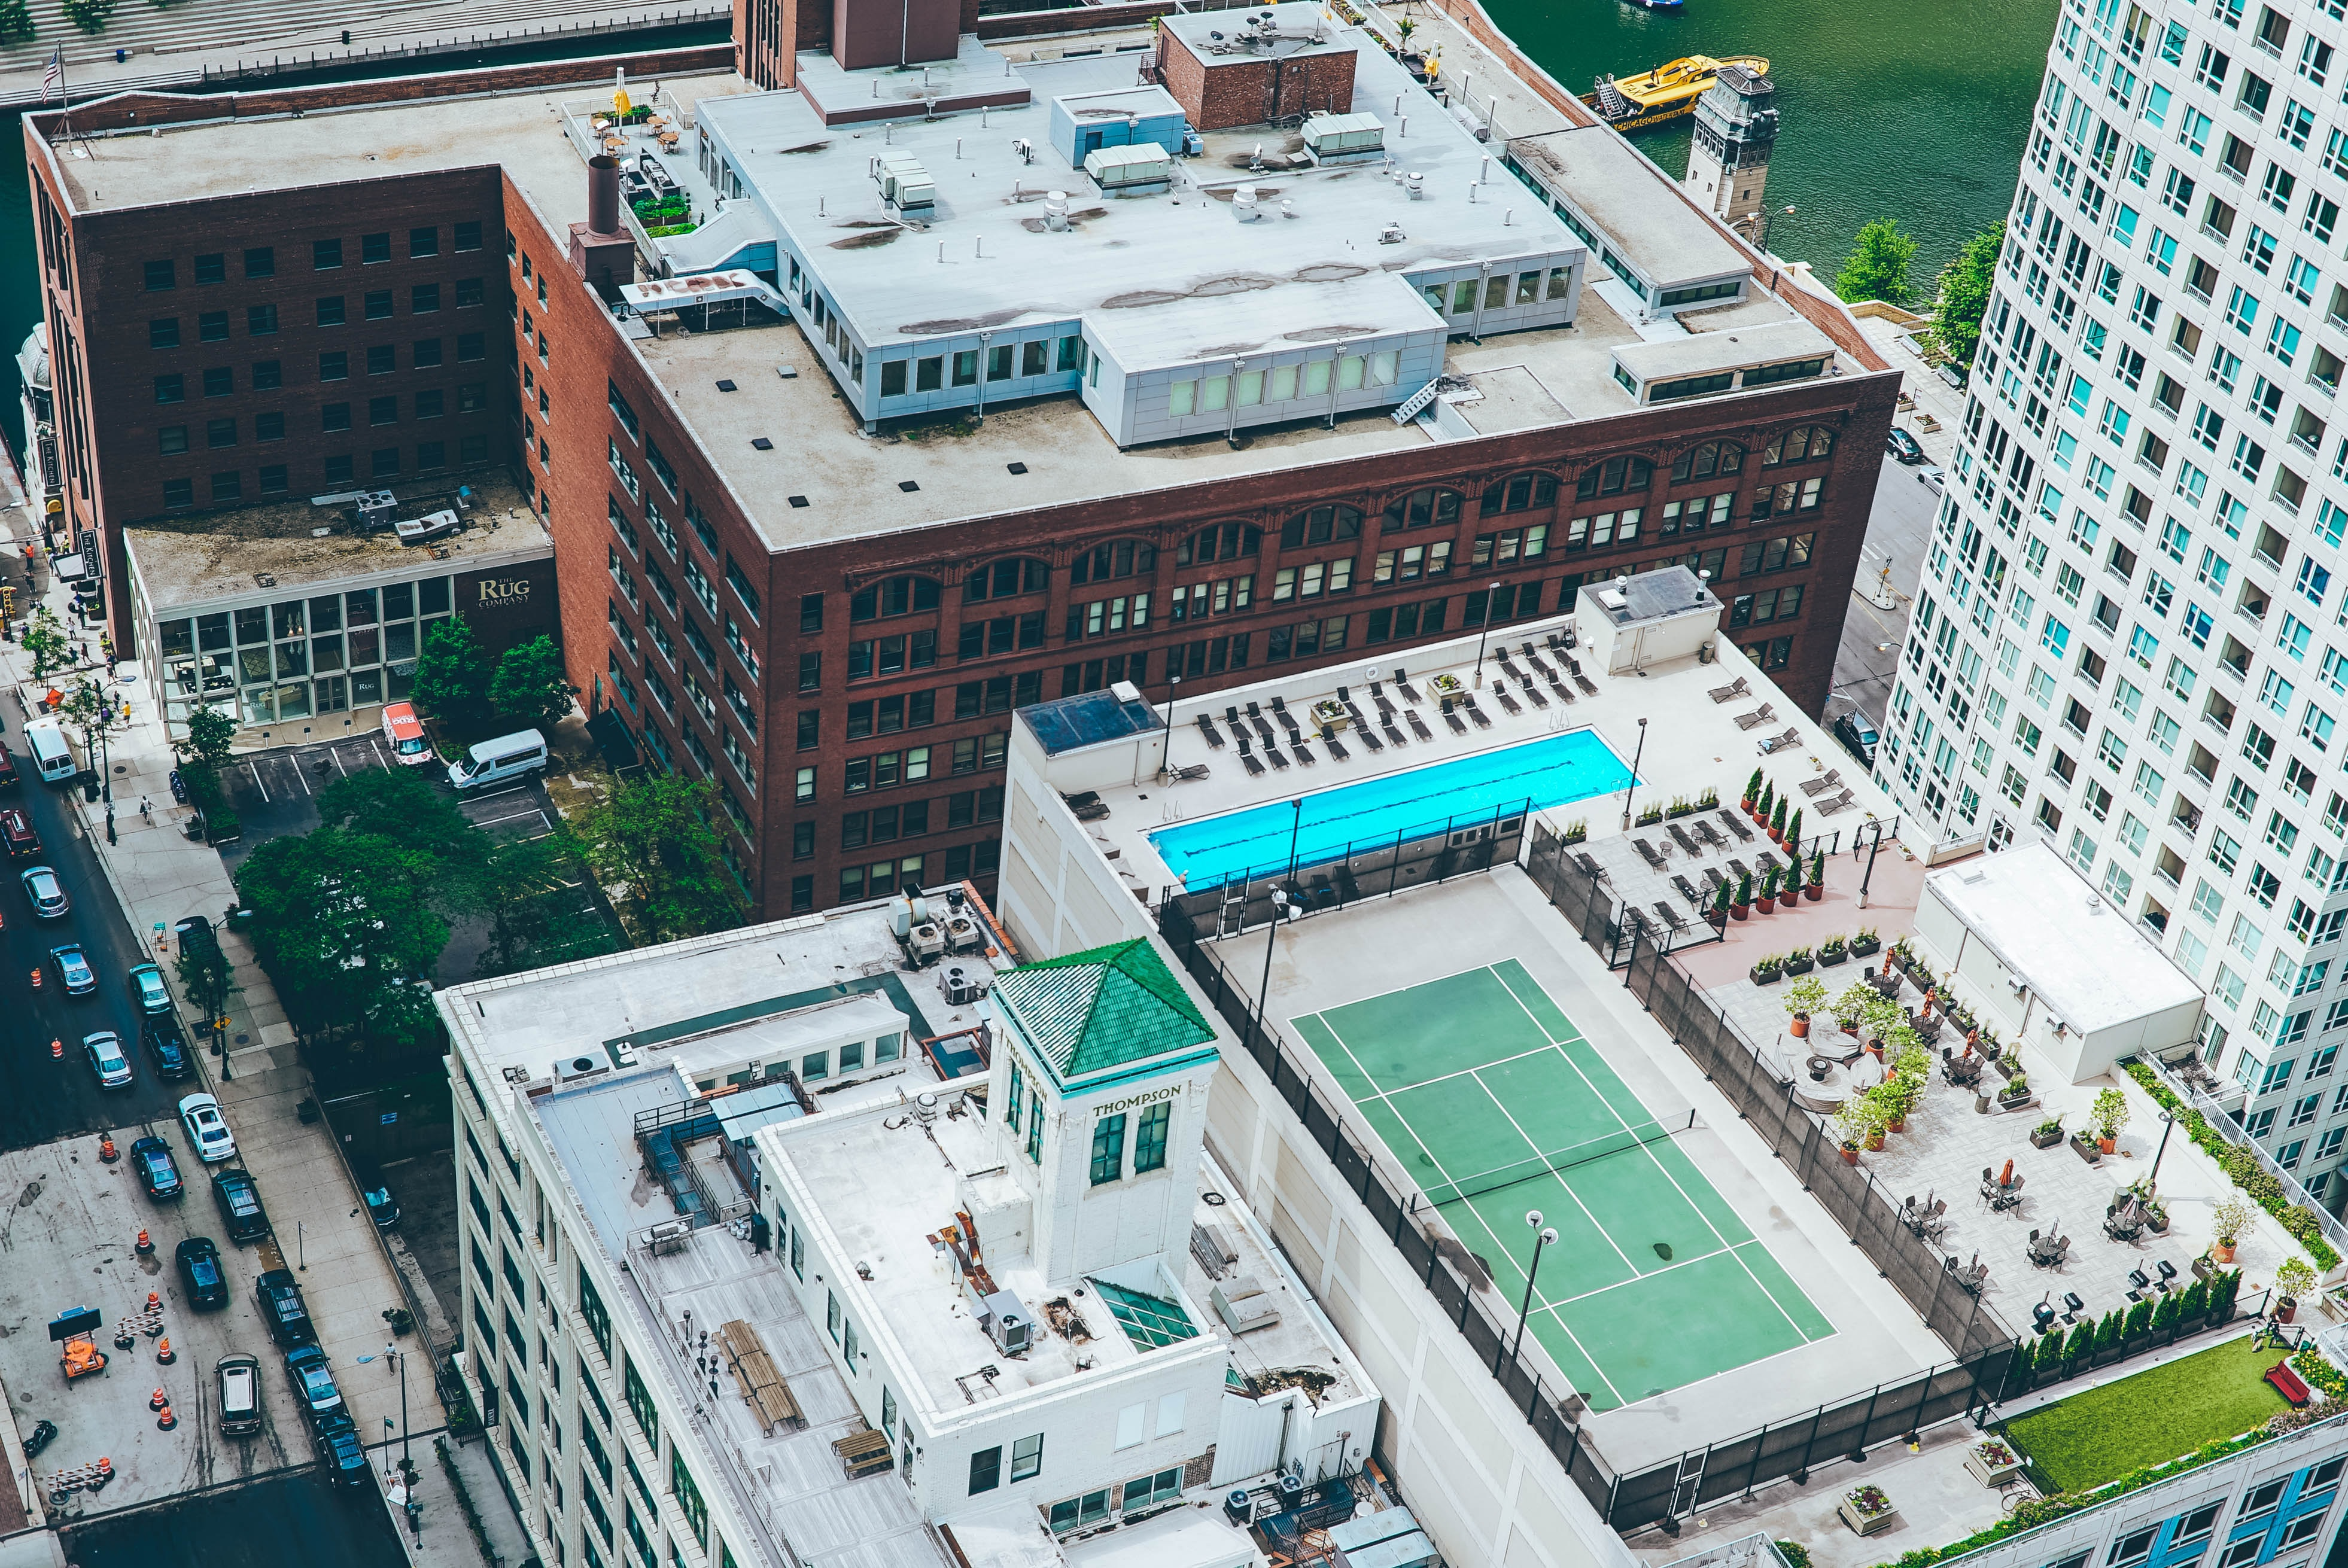 aerial view photo of tennis court and swimming pool on top of building along the road